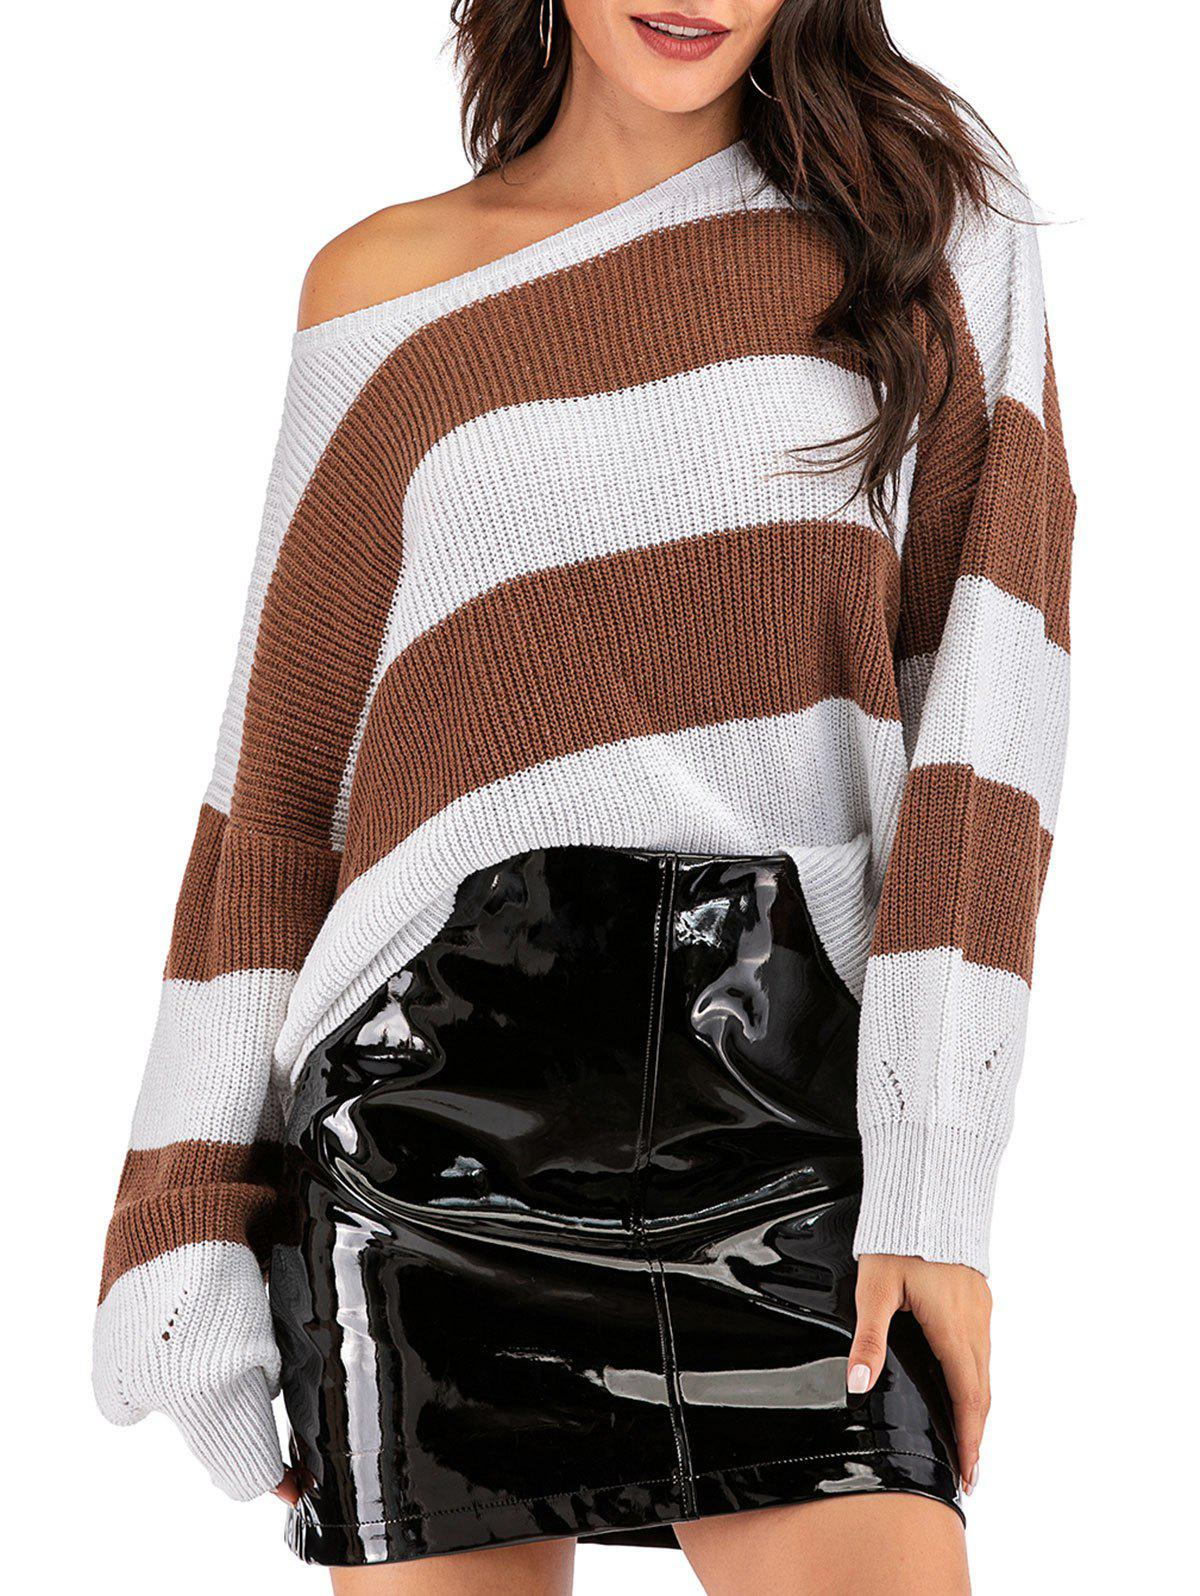 Pointelle Knit Striped Oversized Sweater